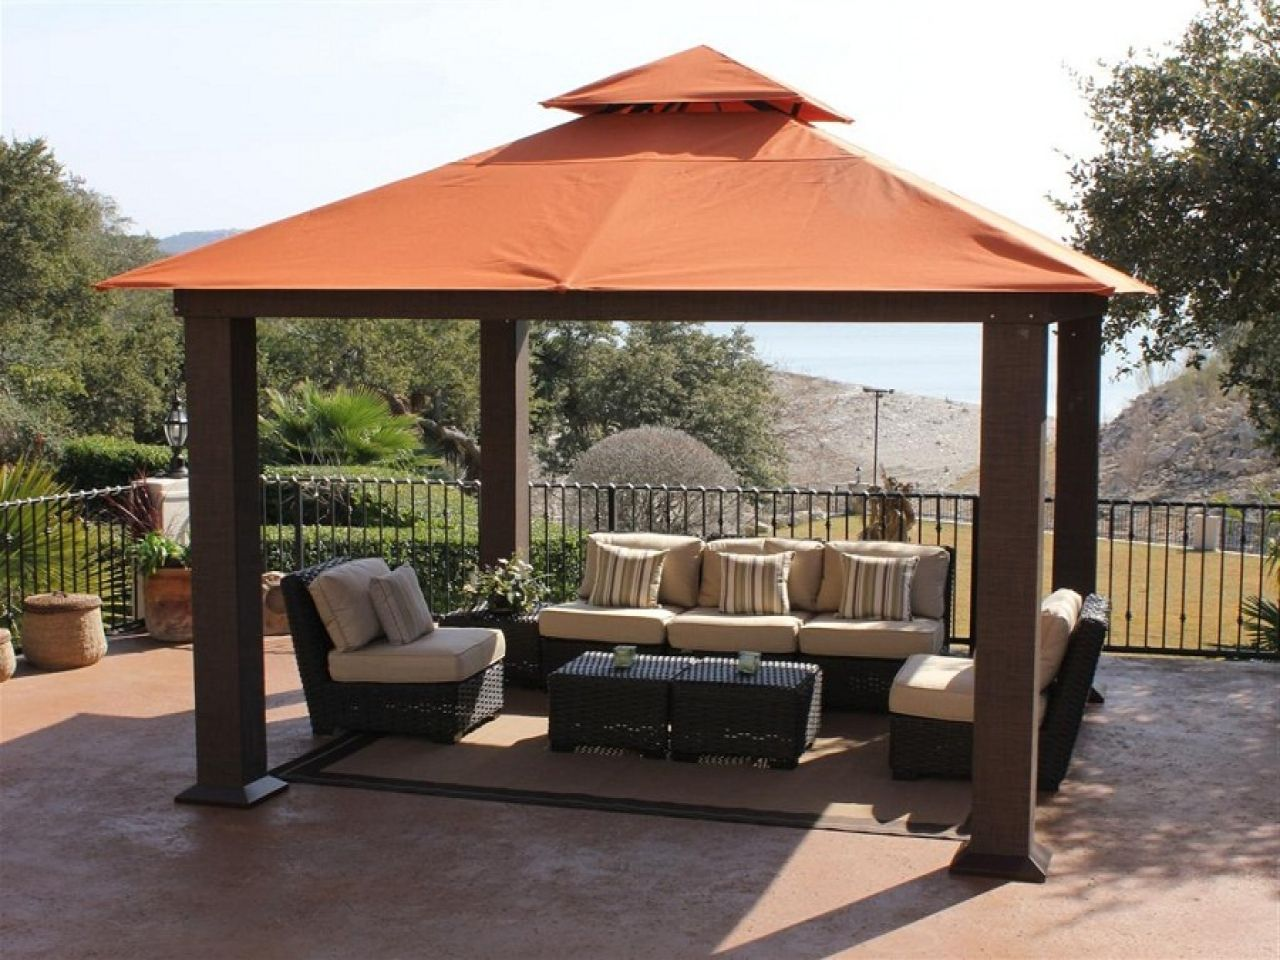 free standing covered patio designs. Exellent Covered Patio Cover Pictures Ideas Wooden Free Standing Patio  In Free Standing Covered Designs B